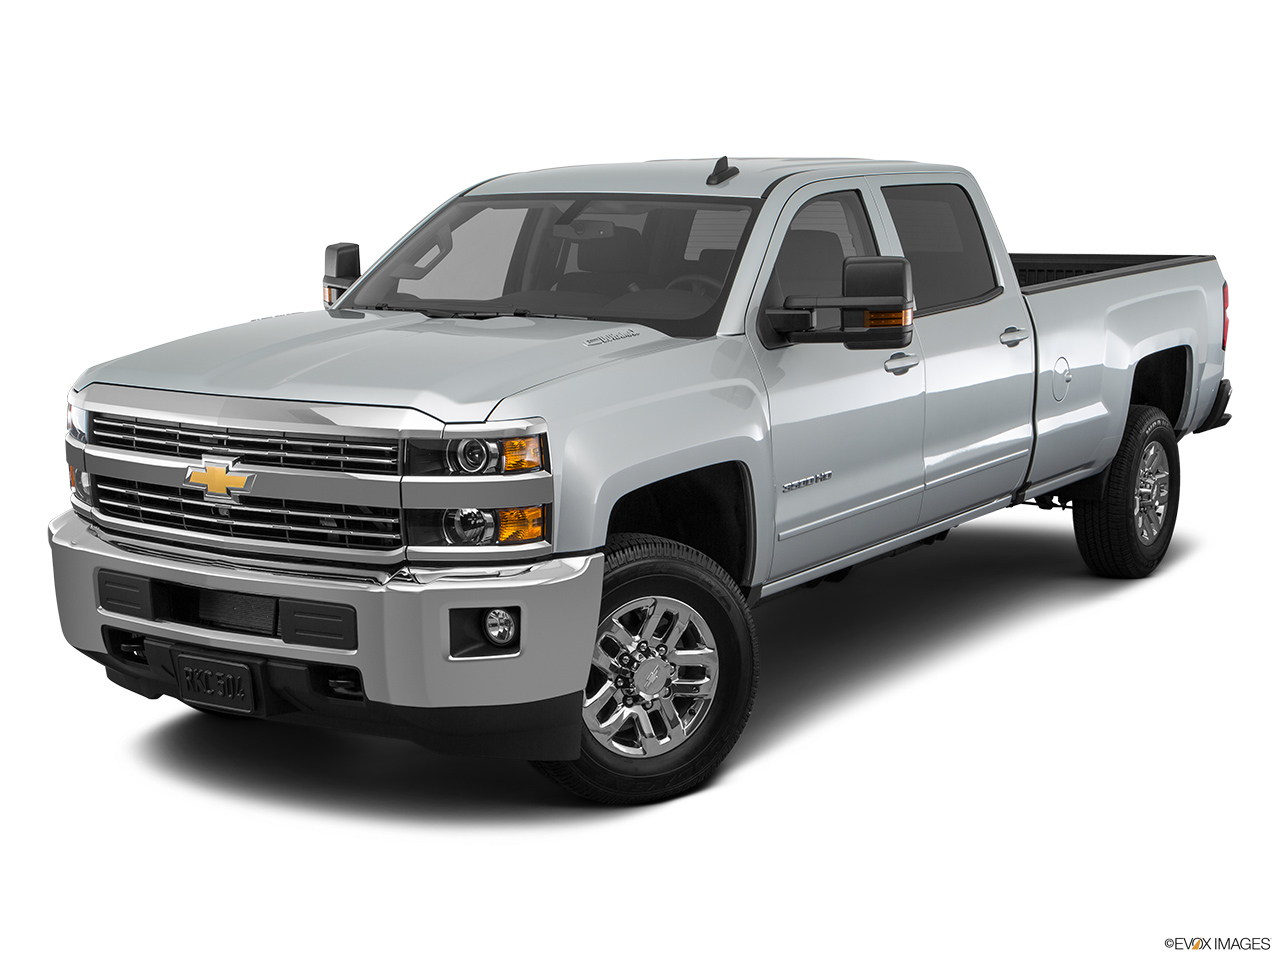 chevrolet silverado 2016 3500 in saudi arabia new car. Black Bedroom Furniture Sets. Home Design Ideas